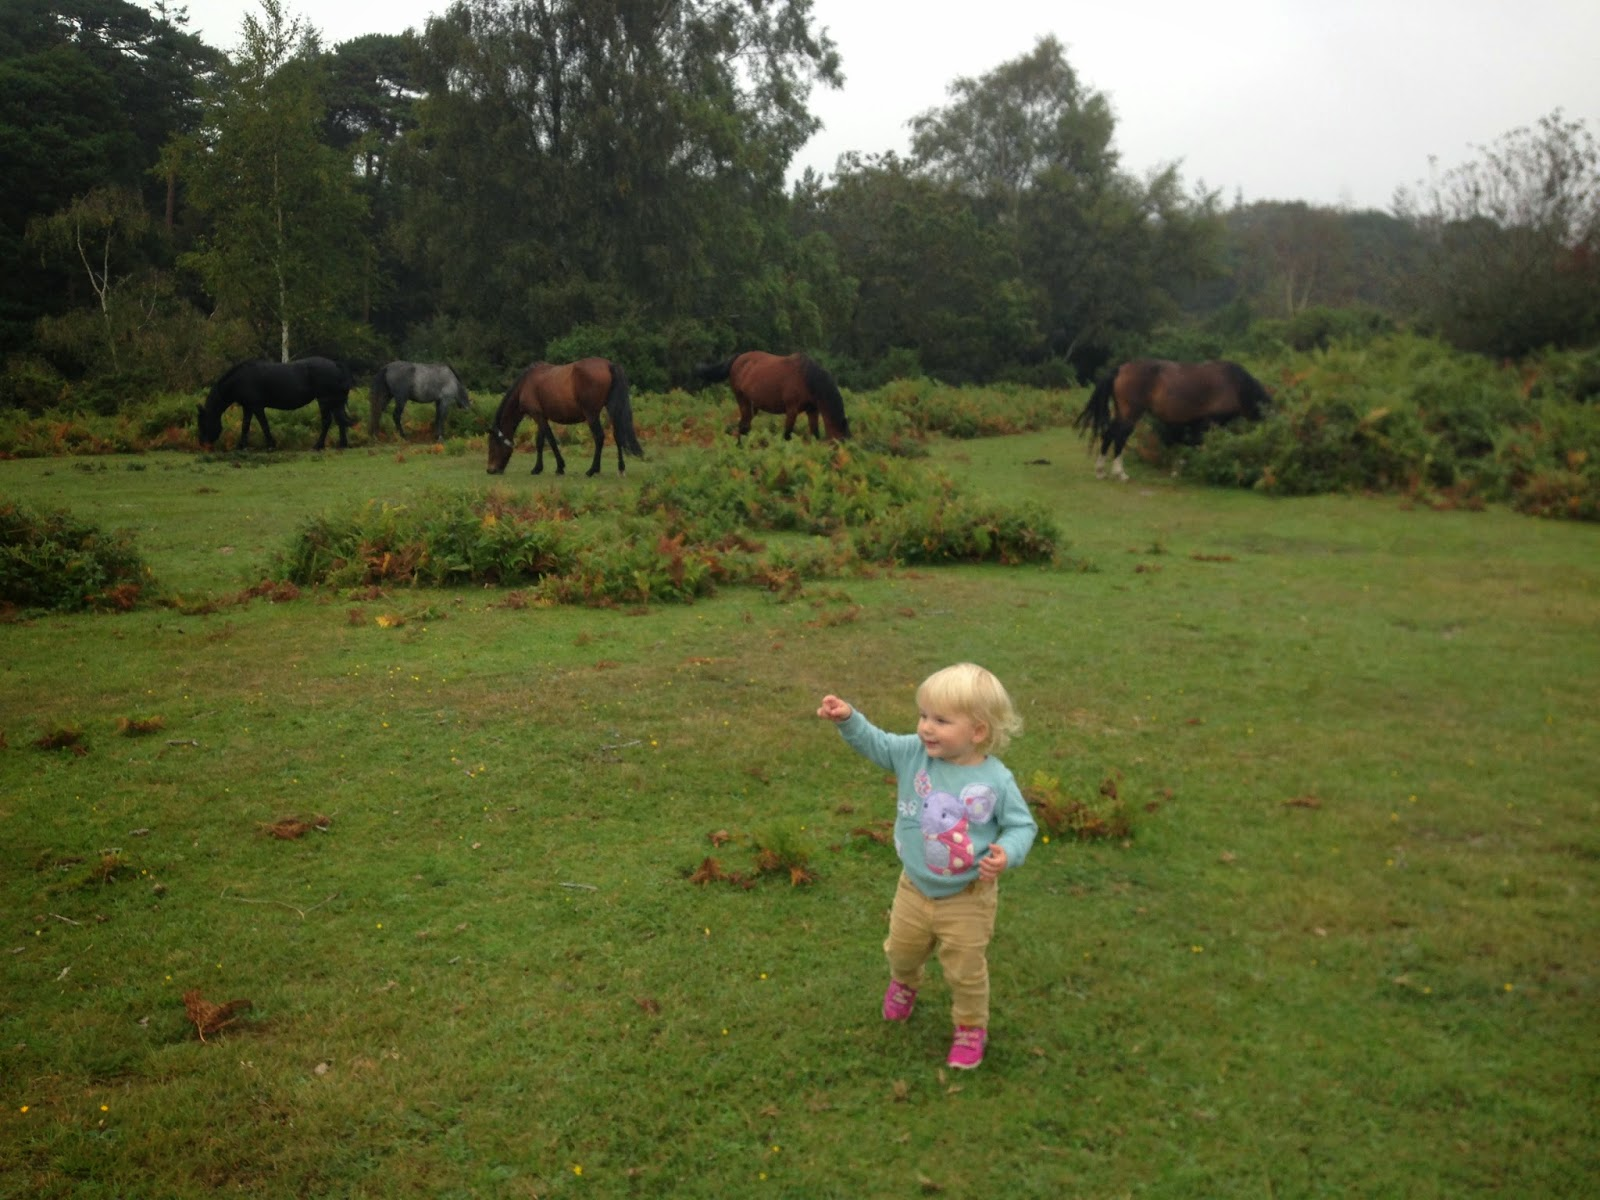 Tin Box Tot and horses in the New Forest